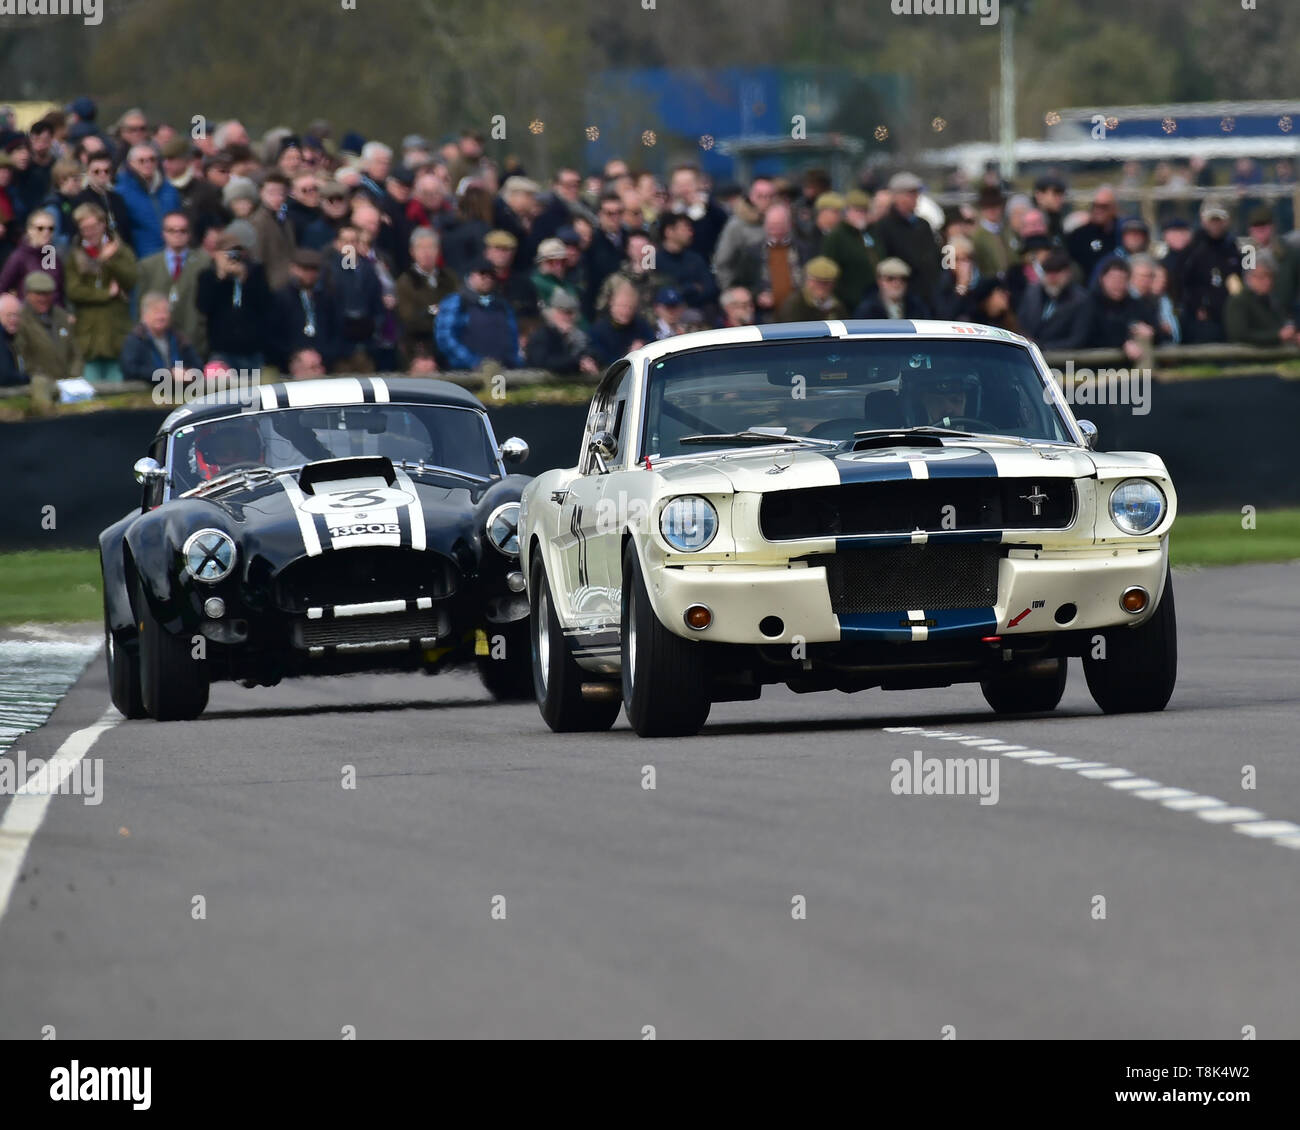 Joel Wykeham, Nicholas Sleep, Ford Shelby Mustang 350 GT, Graham Hill Trophy, Closed cockpit GT cars, Prototype cars, Spirit of the RAC TT Races 1960- Stock Photo